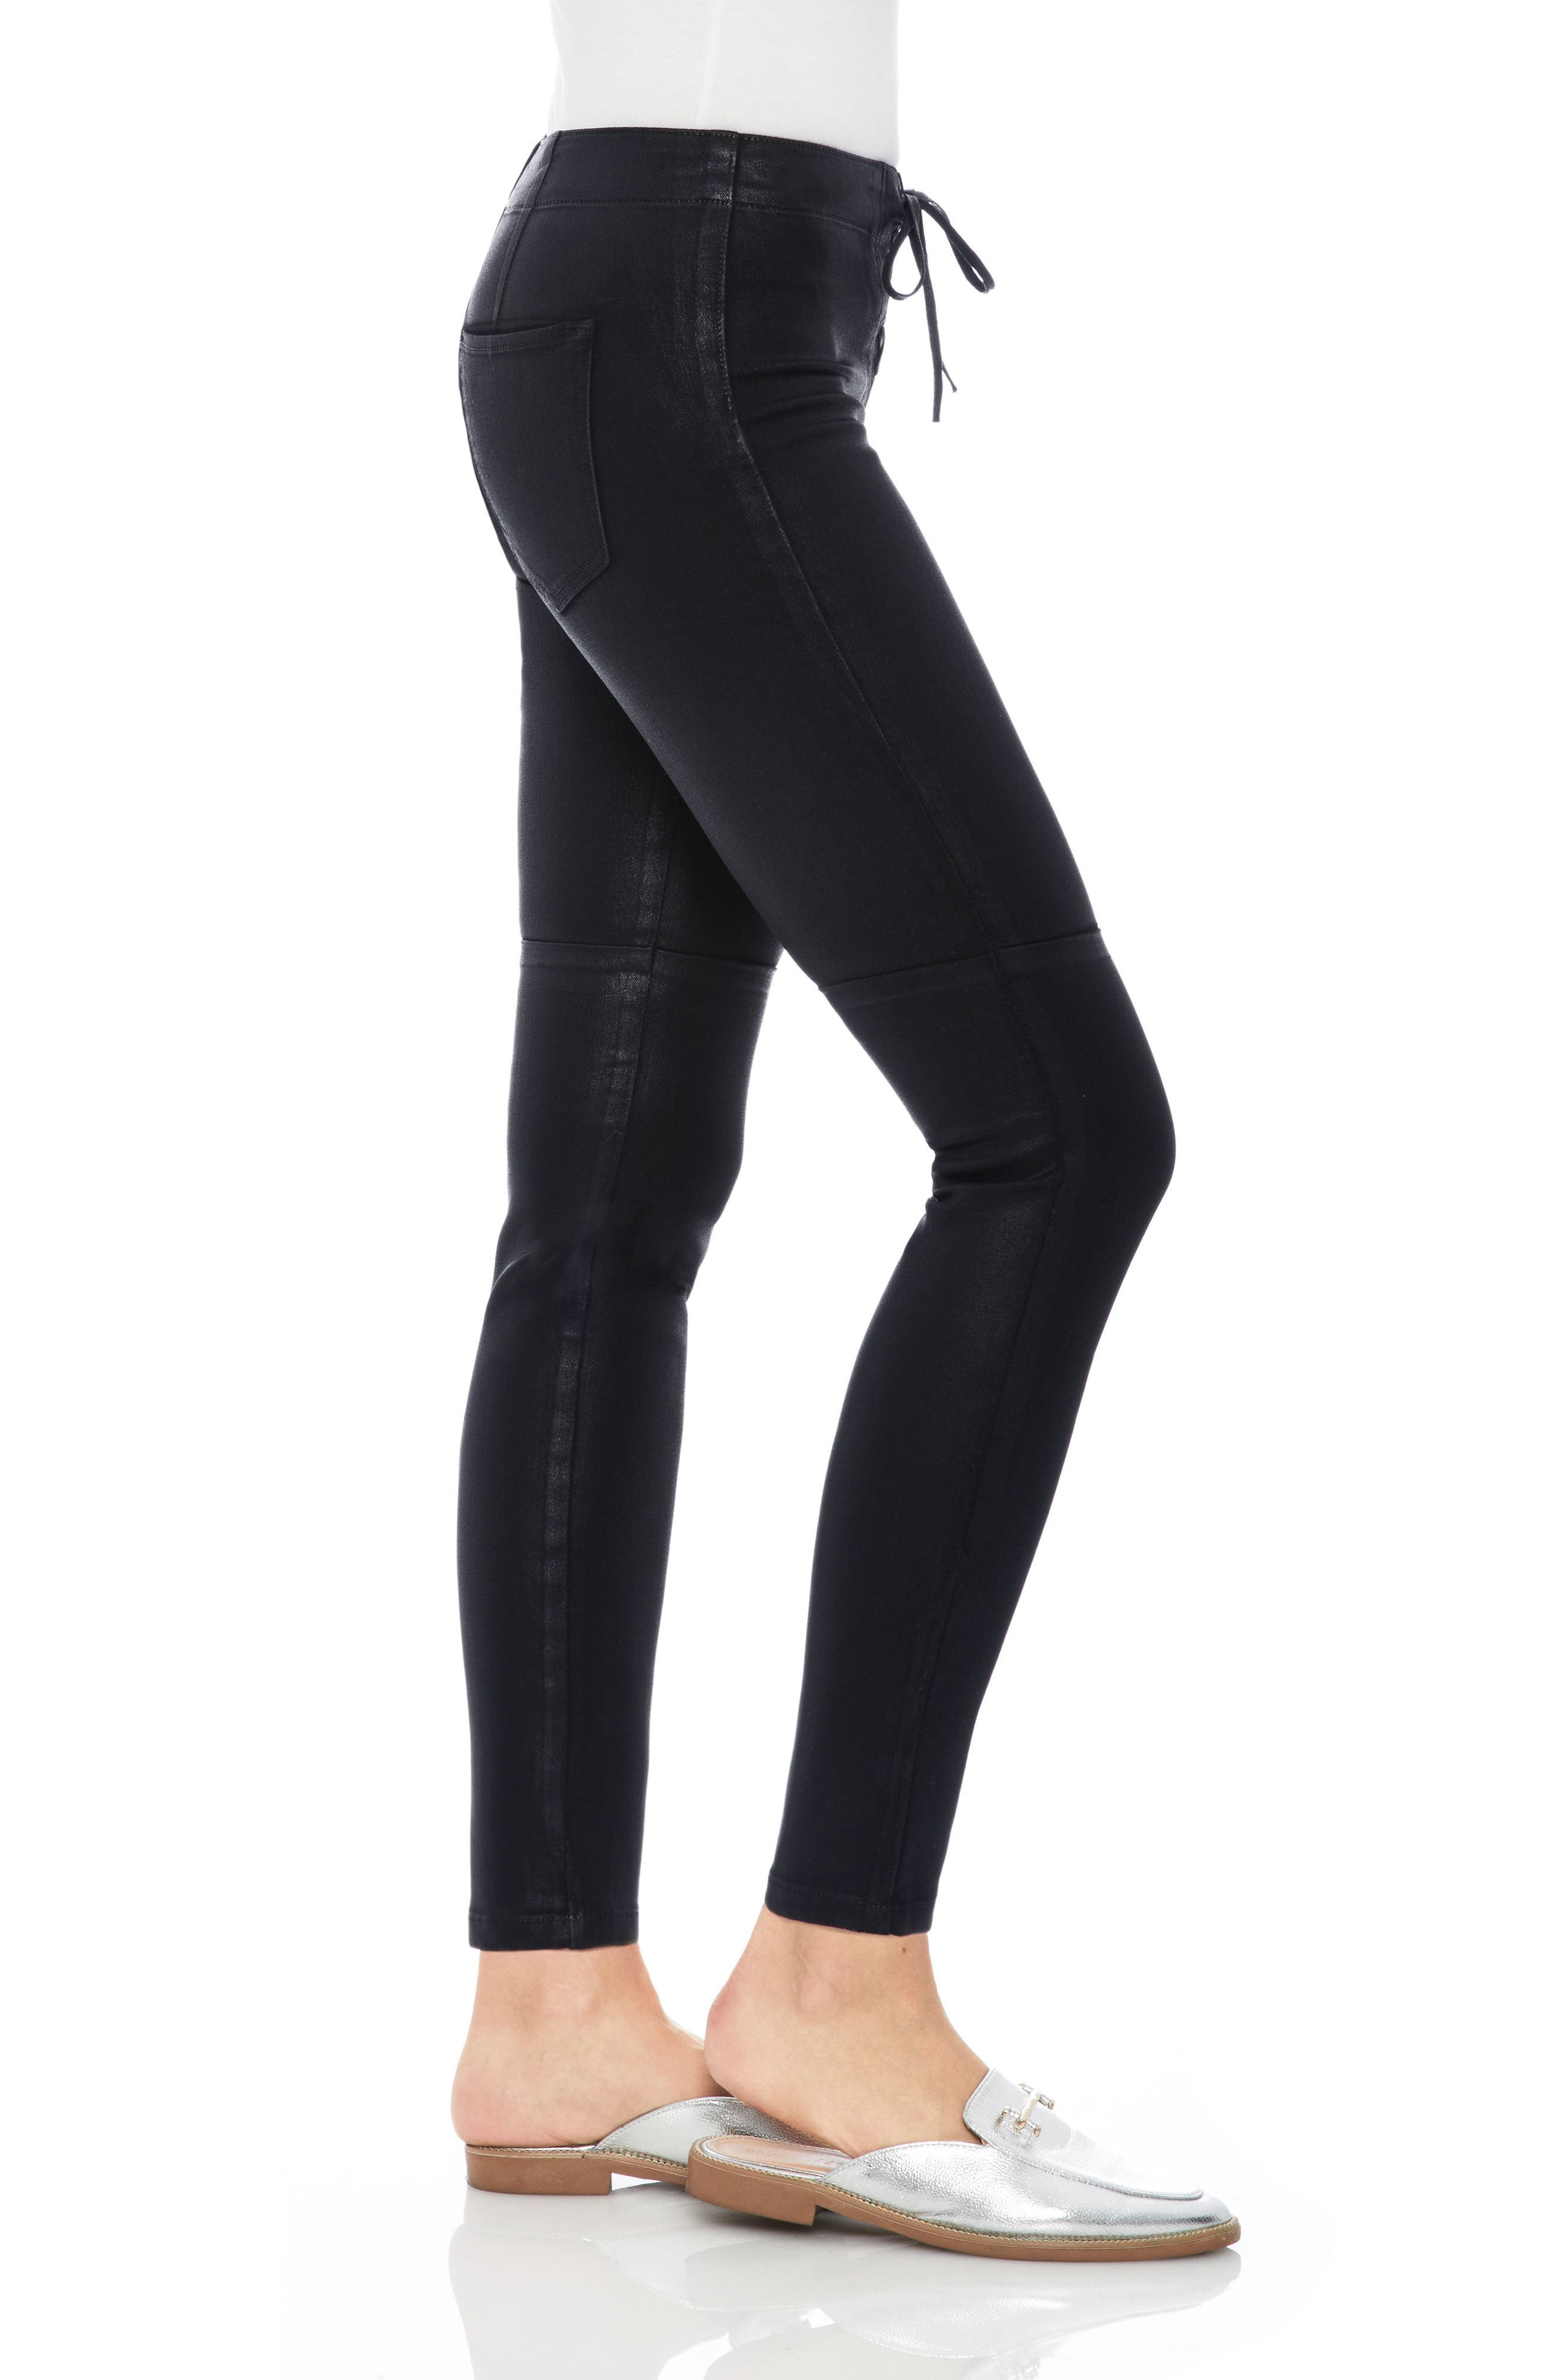 Taylor Hill x Joe's Icon Coated Ankle Skinny Pants,                             Alternate thumbnail 3, color,                             011